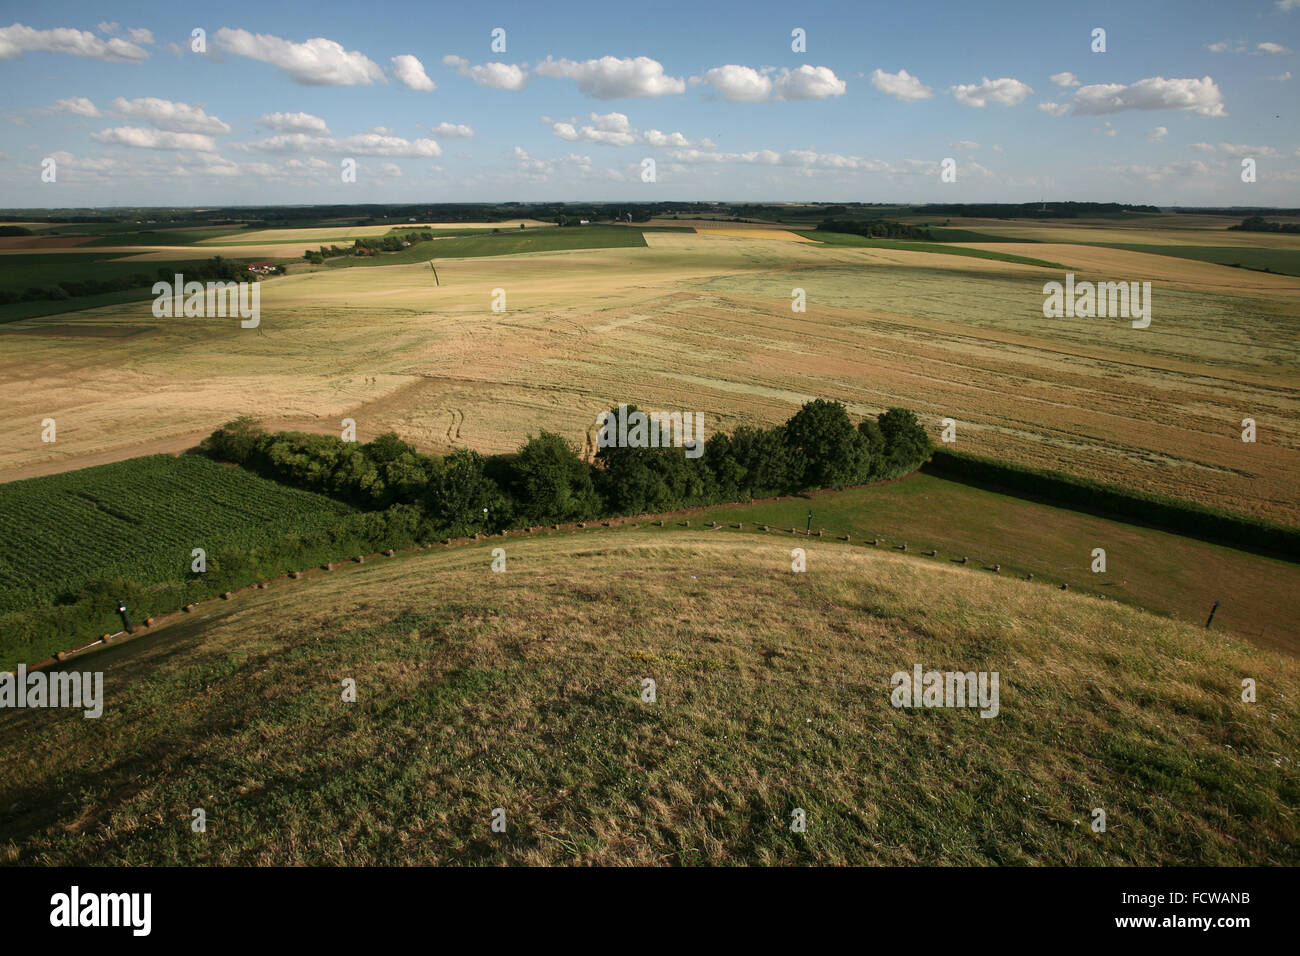 Battlefield of the Battle of Waterloo (1815) near Brussels, Belgium, pictured from the top of the Lion's Mound. - Stock Image